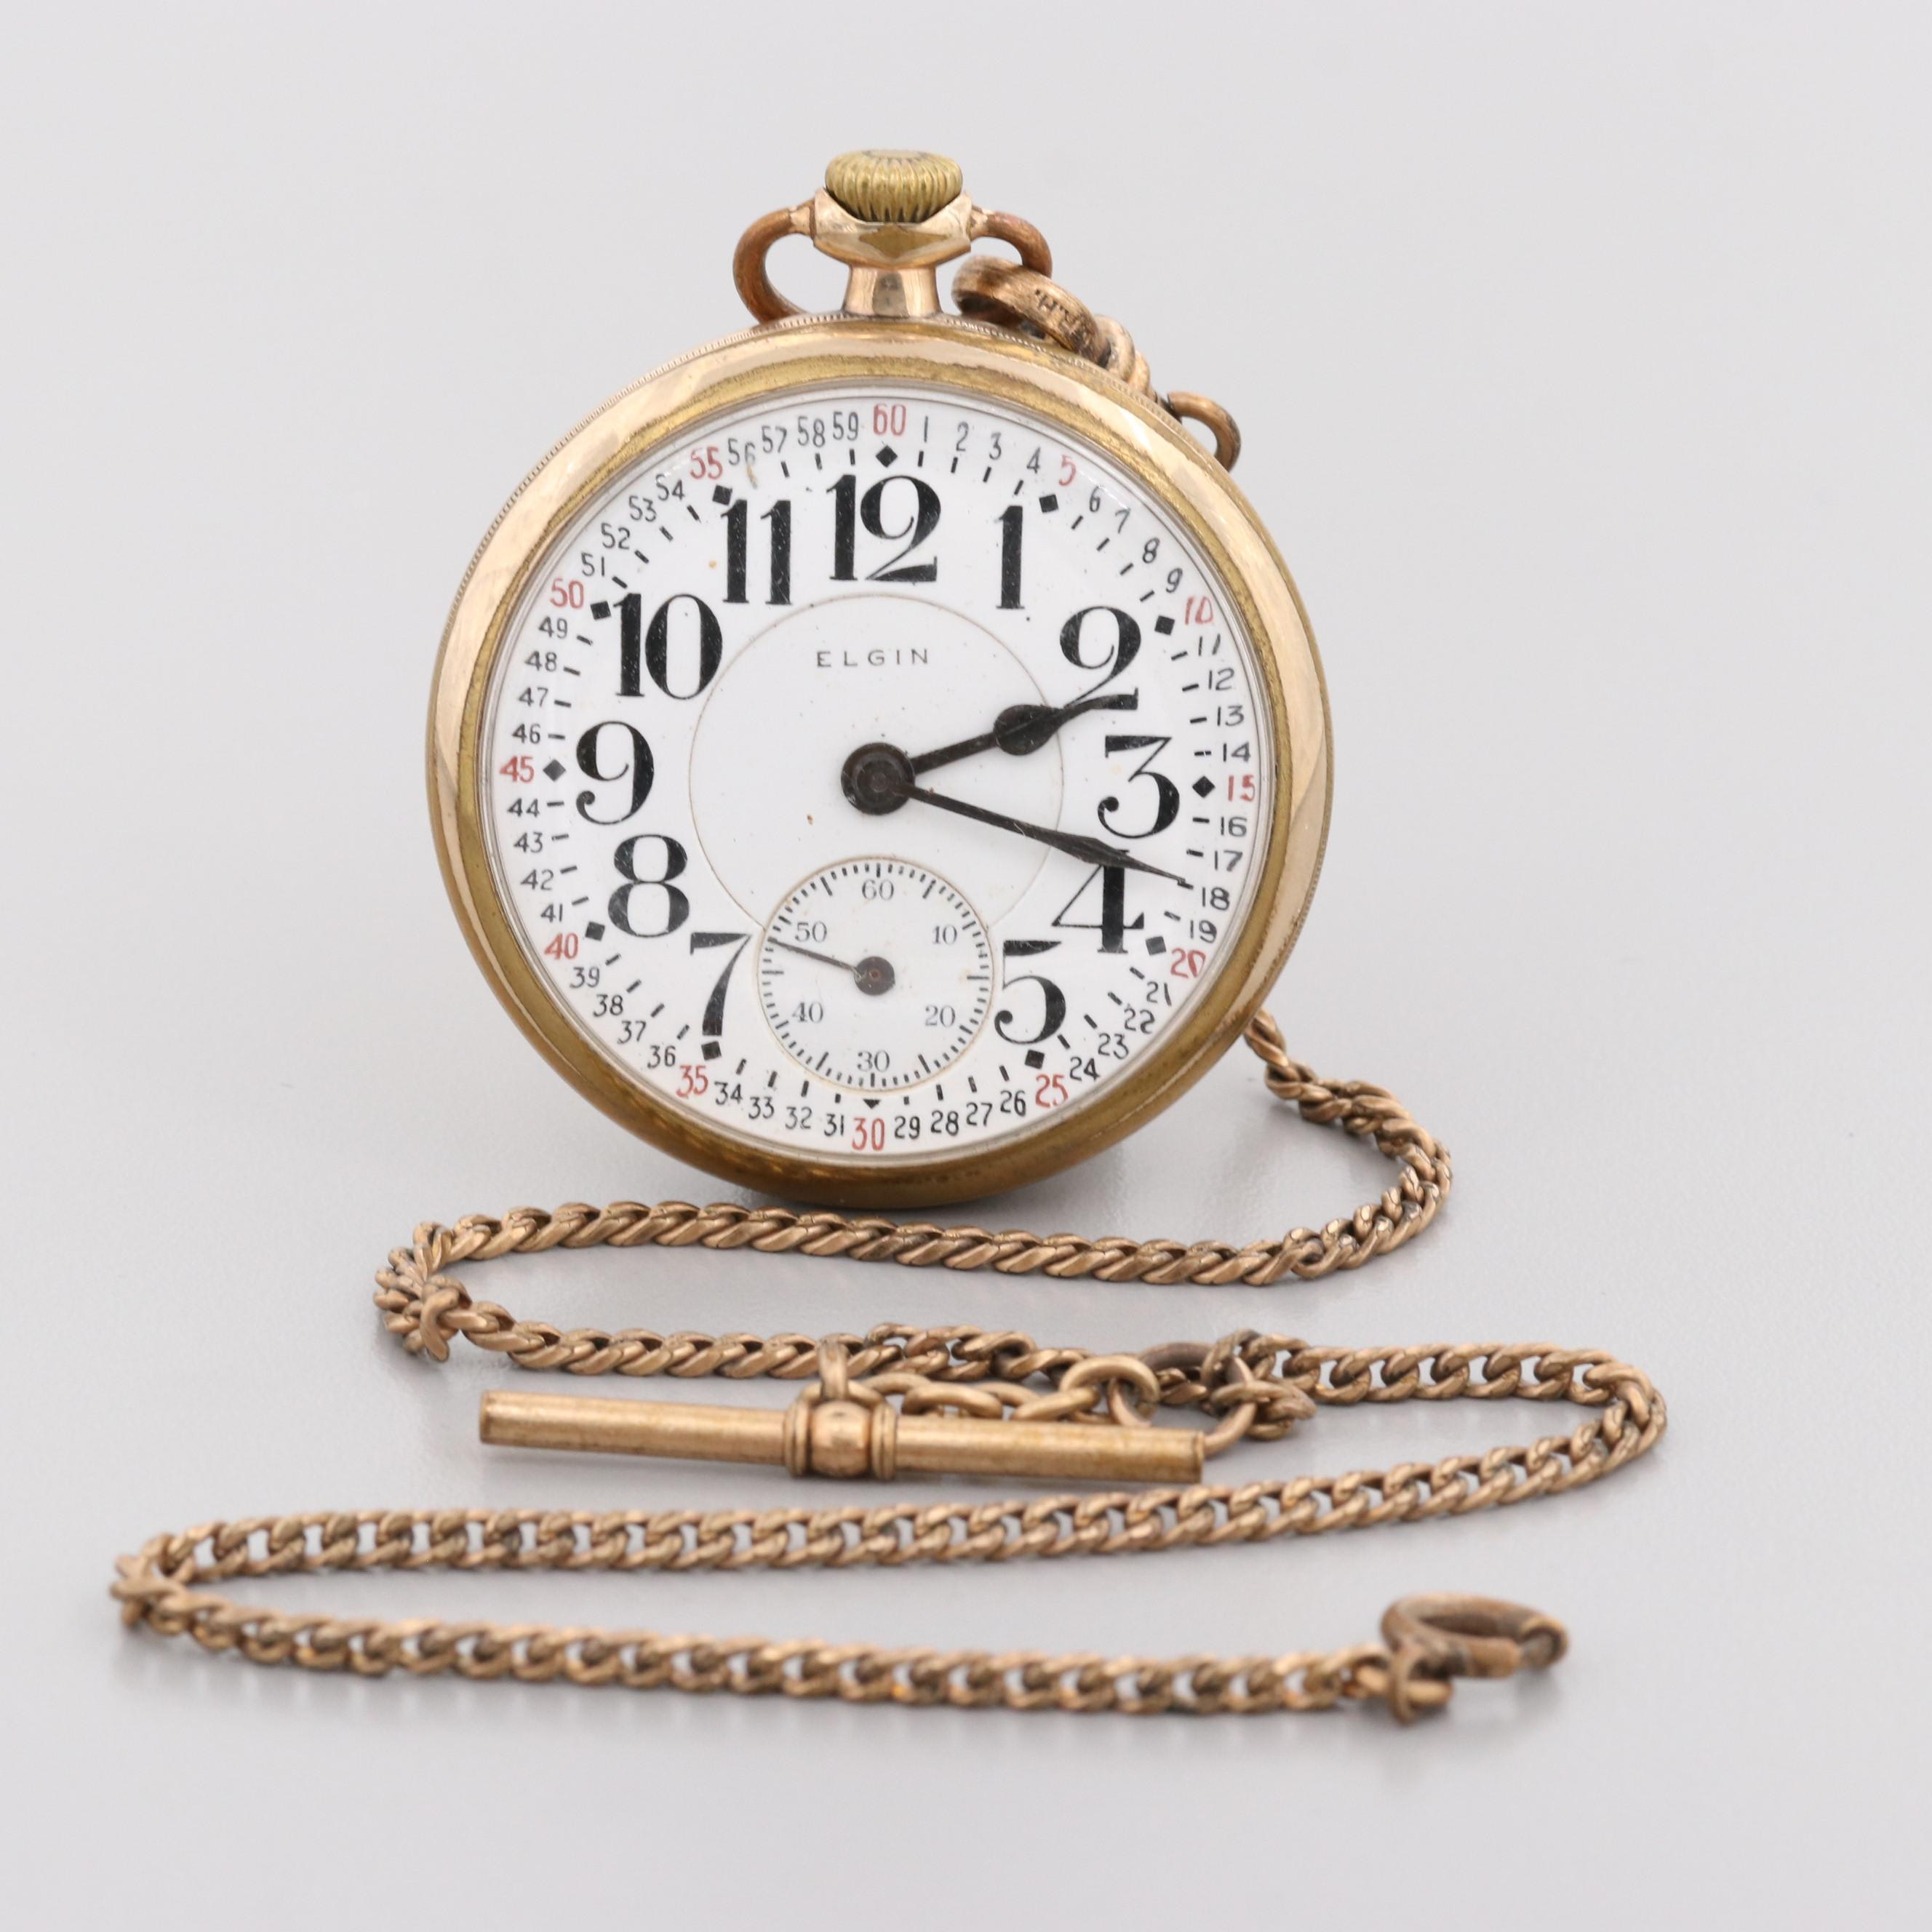 Elgin B.W. Raymond Gold Filled Pocket Watch, 1912